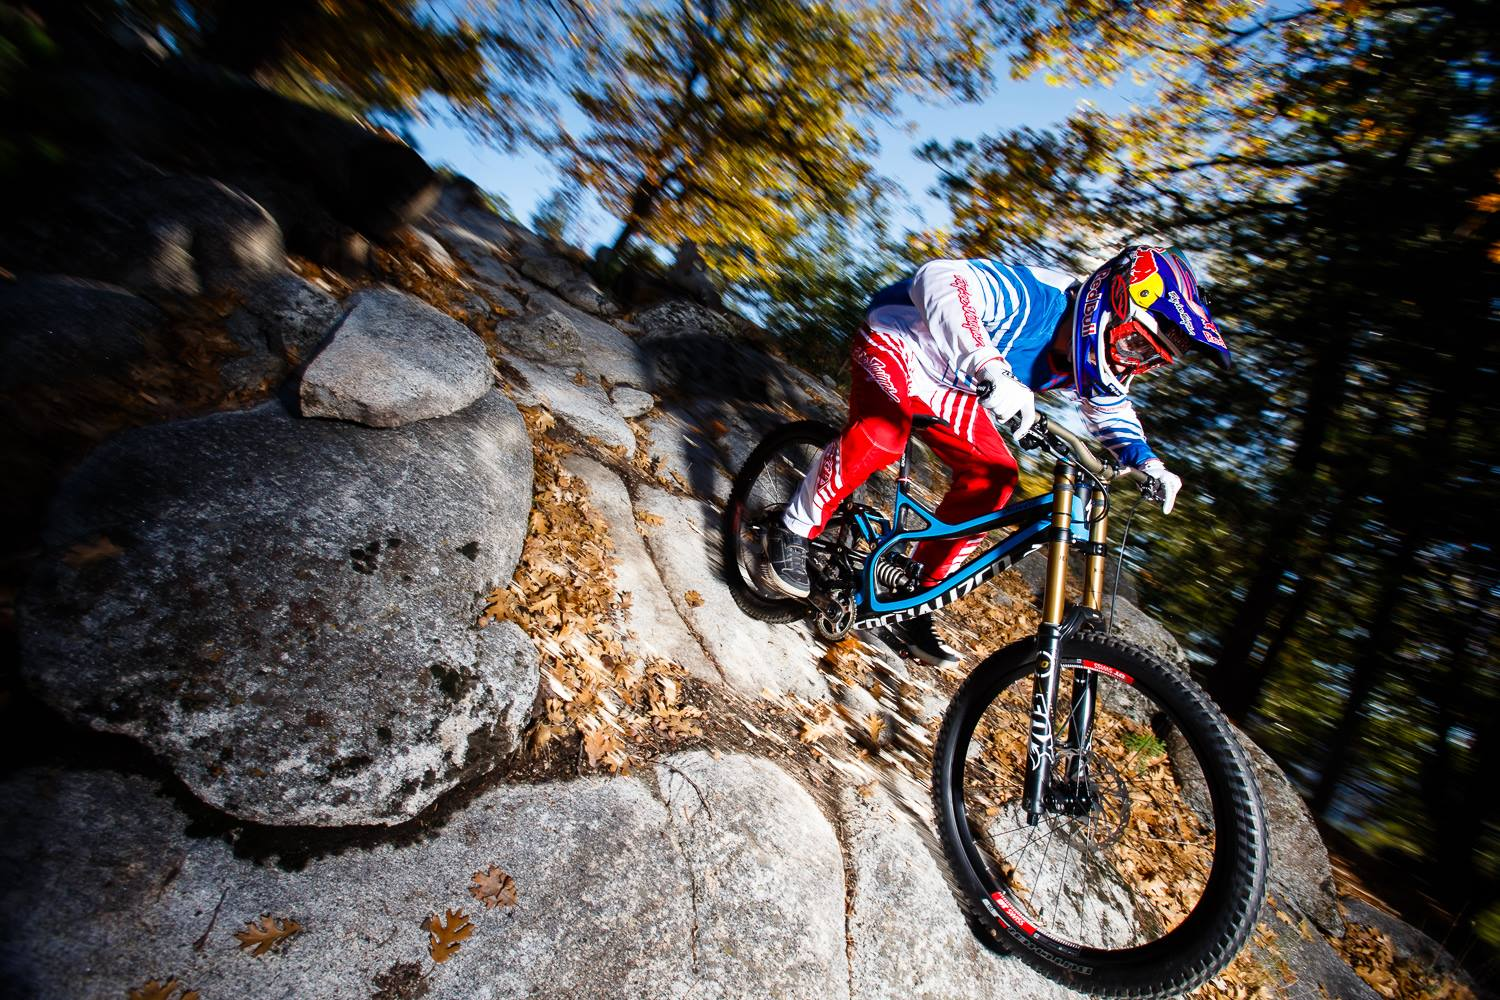 Our fearless downhiller continued on, despite the fact that he was riding directly on the rim – his tire flapping behind his bike. The commentators prayed his wheels wouldn't lock up and the crowd went wild. Gwin may not have won the cup, but the charismatic American held his bike up at the finish and won the hearts of the crowd. You see – his career had been going downhill for some time now…